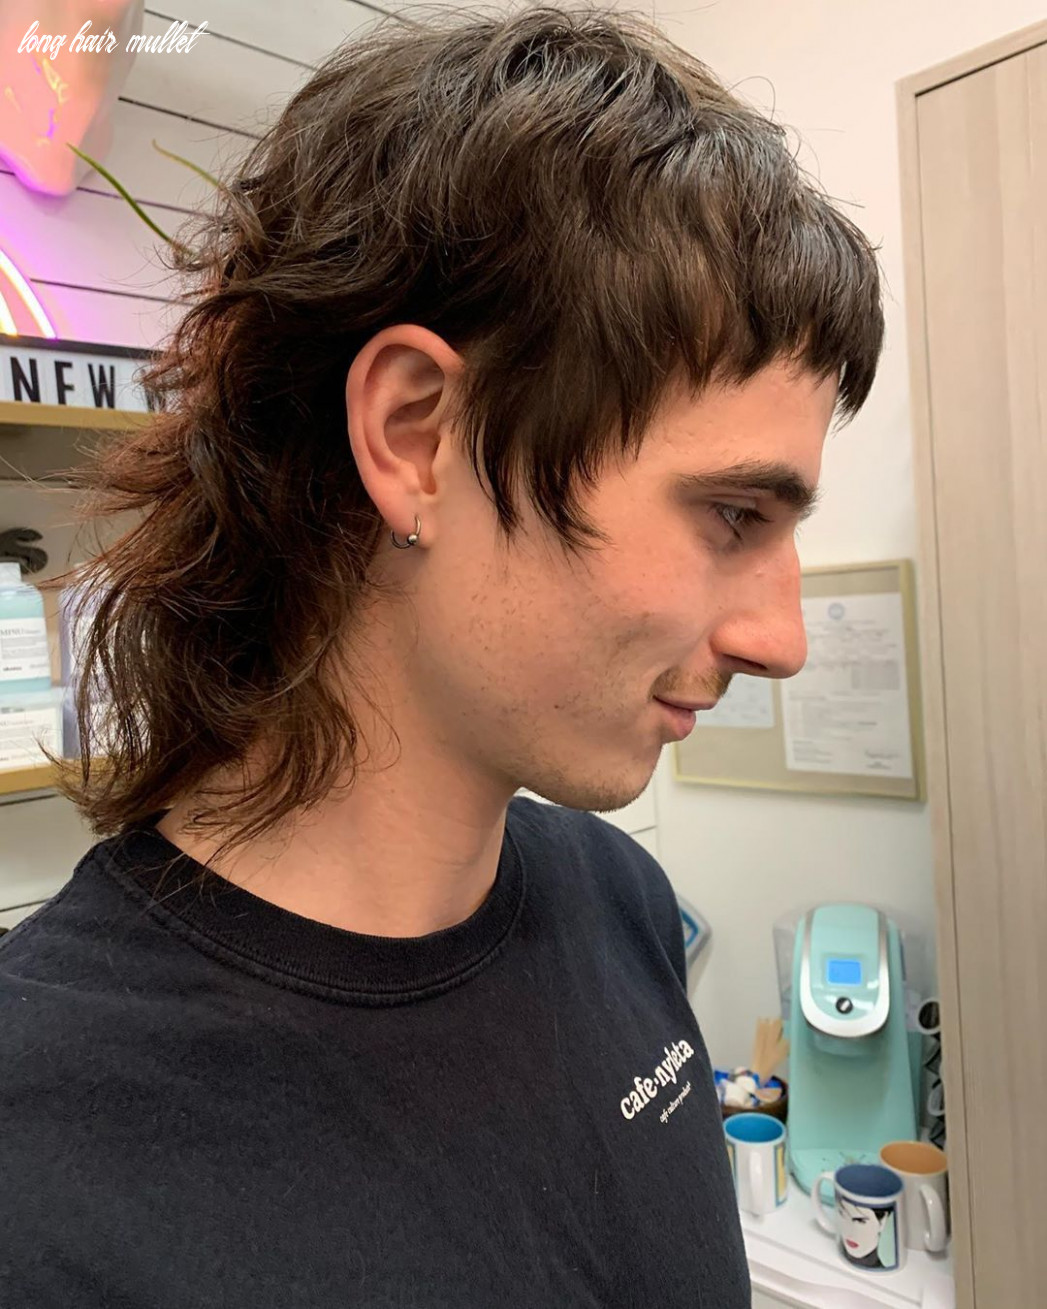 How to grow a mullet haircut & 9 ways to wear it (9 update) long hair mullet